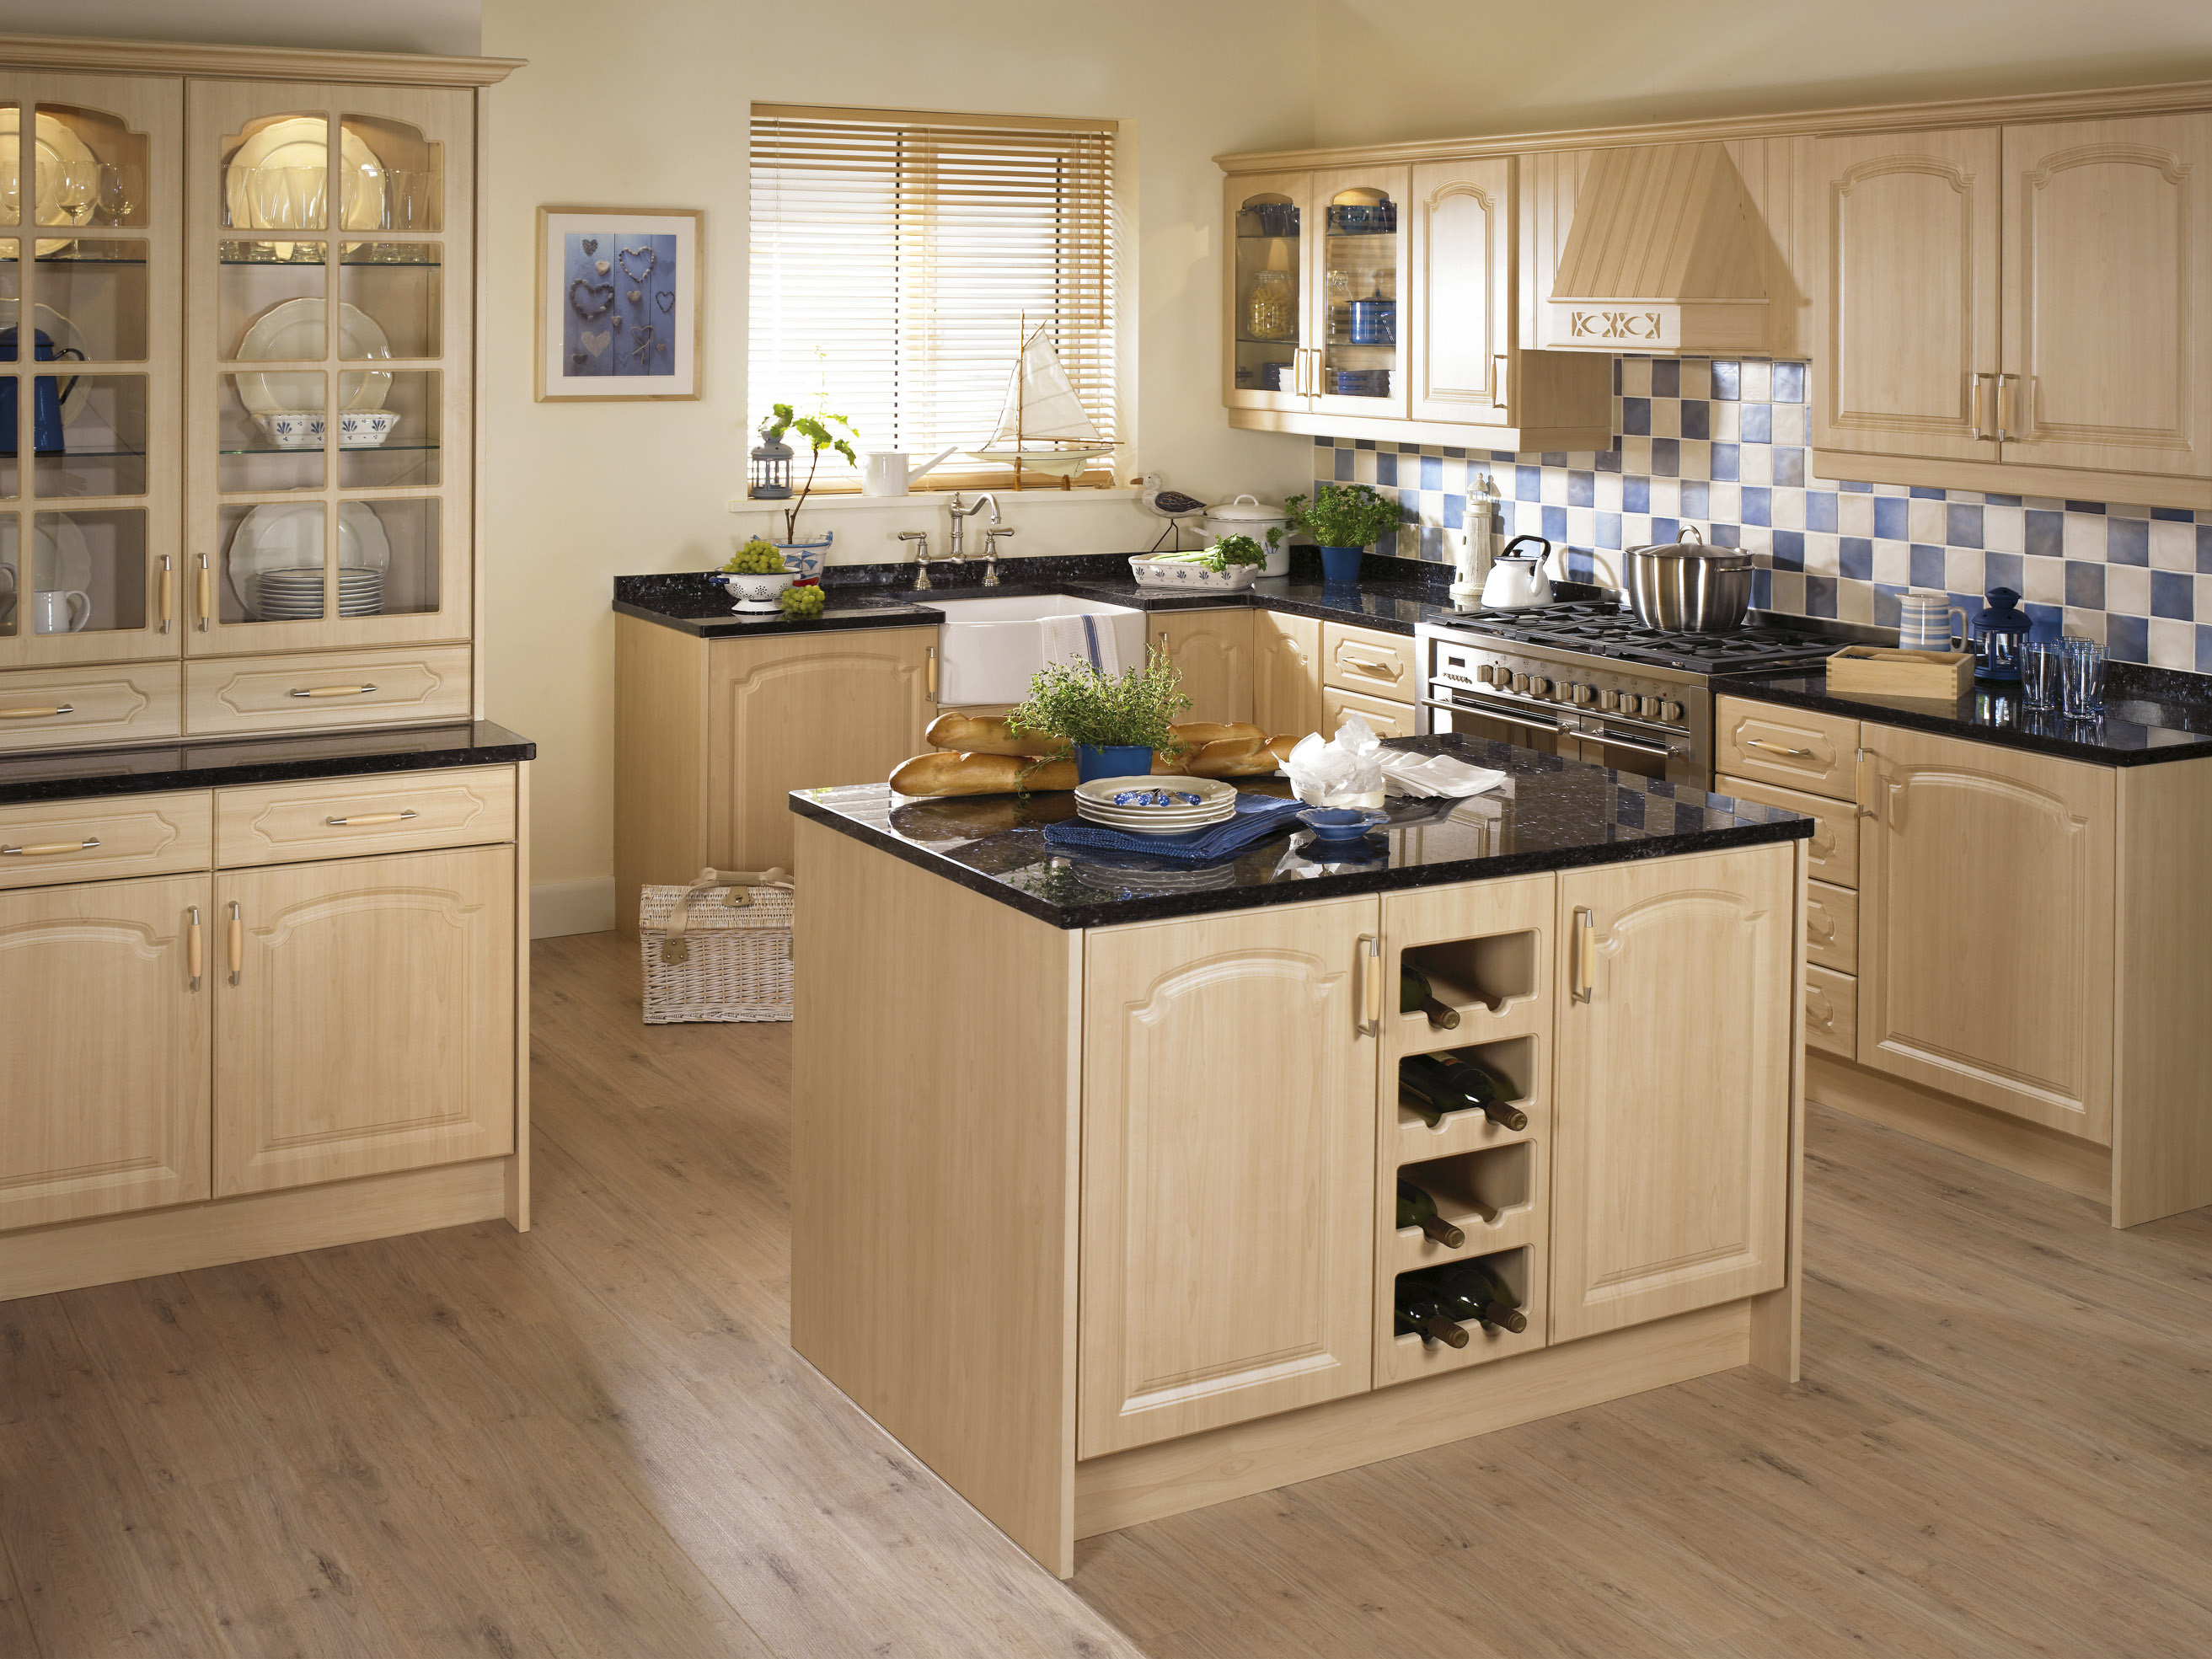 Fitted kitchens midland furniture company for Fitted kitchen companies